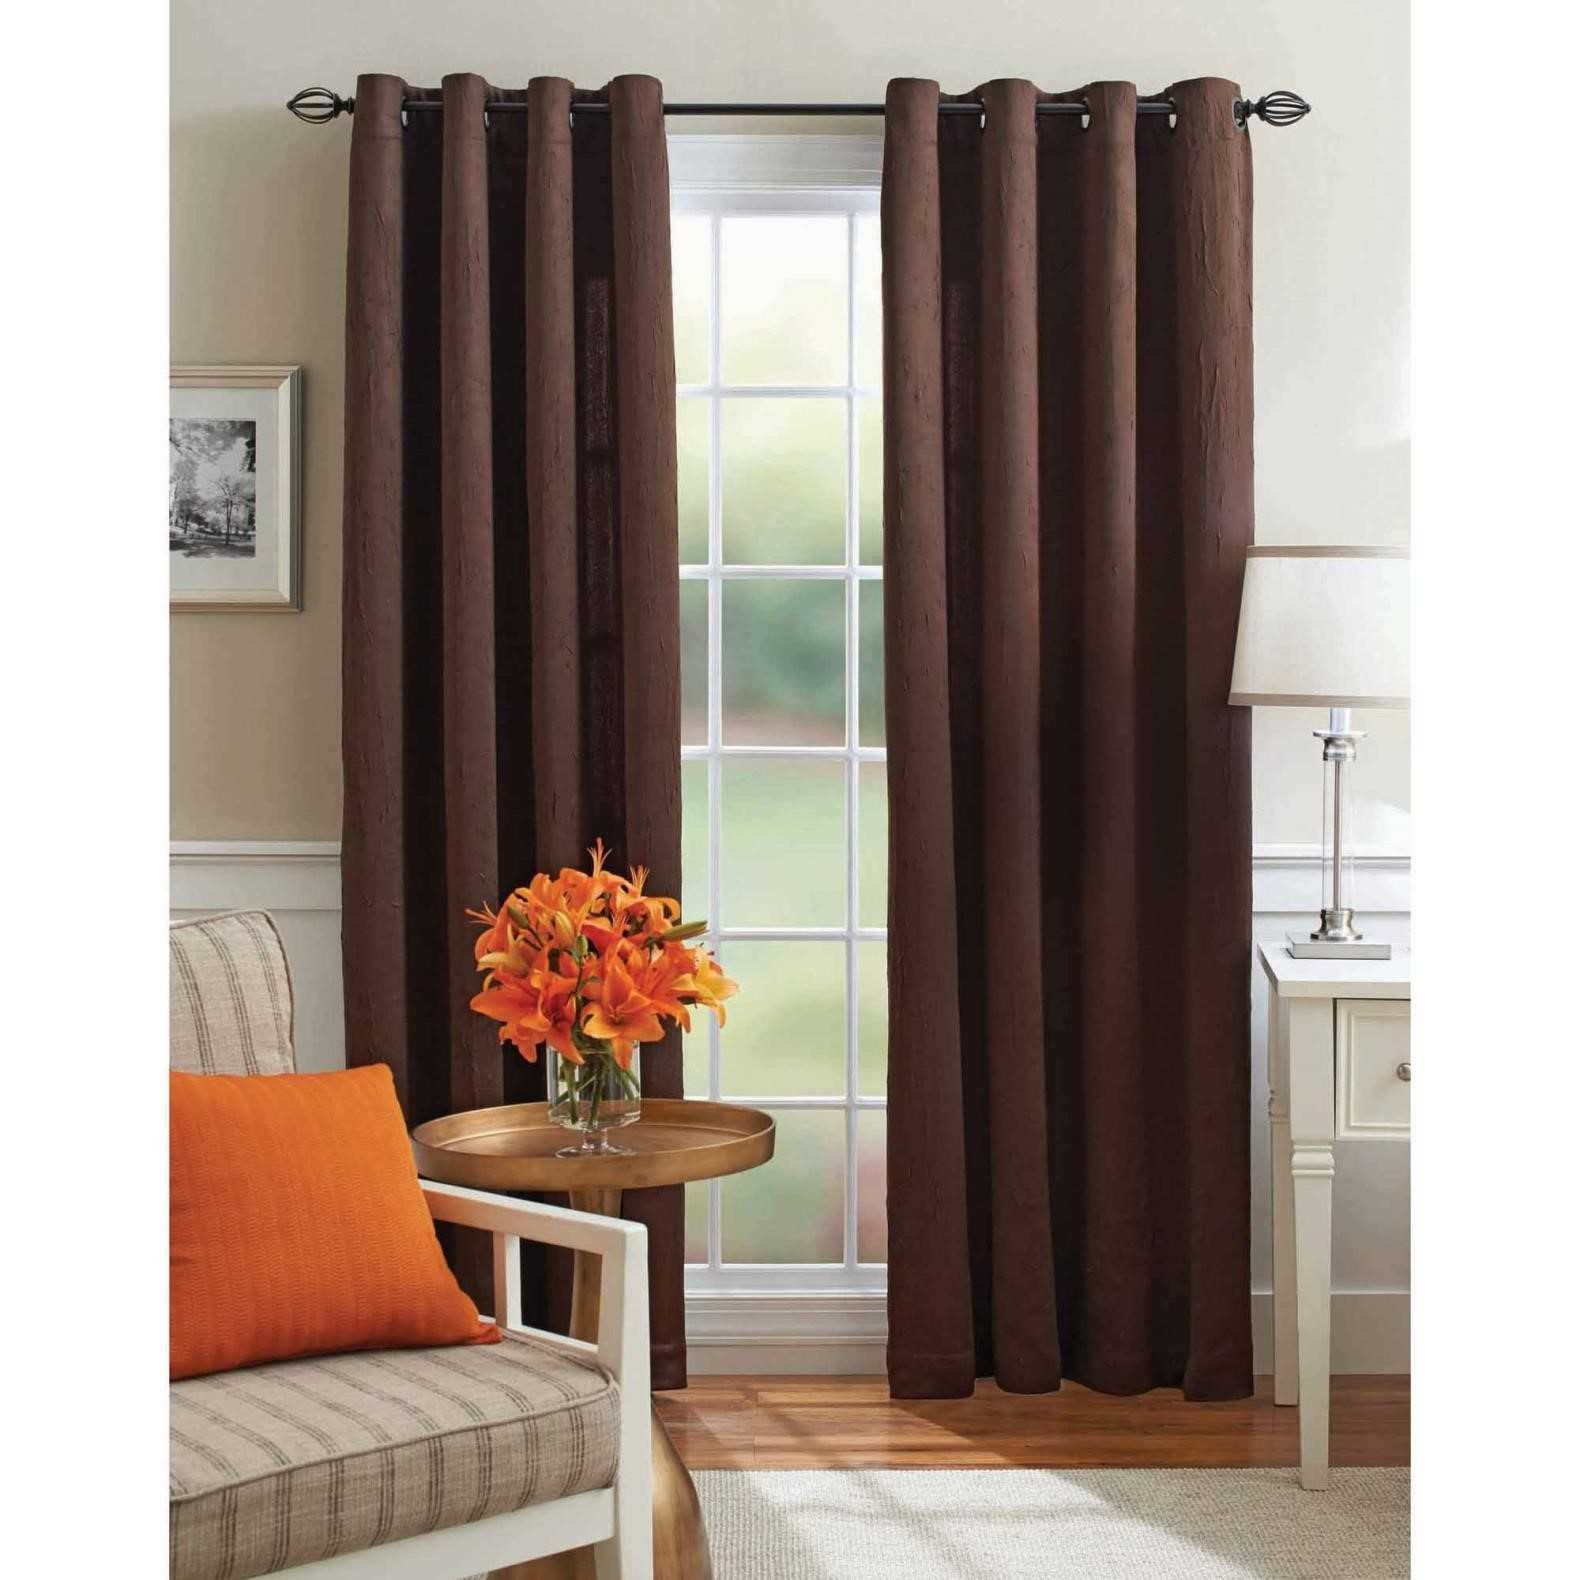 Colorful Curtains Furniture Free Image Black And Yes Go Black Pertaining To Black And Brown Curtains (View 3 of 15)